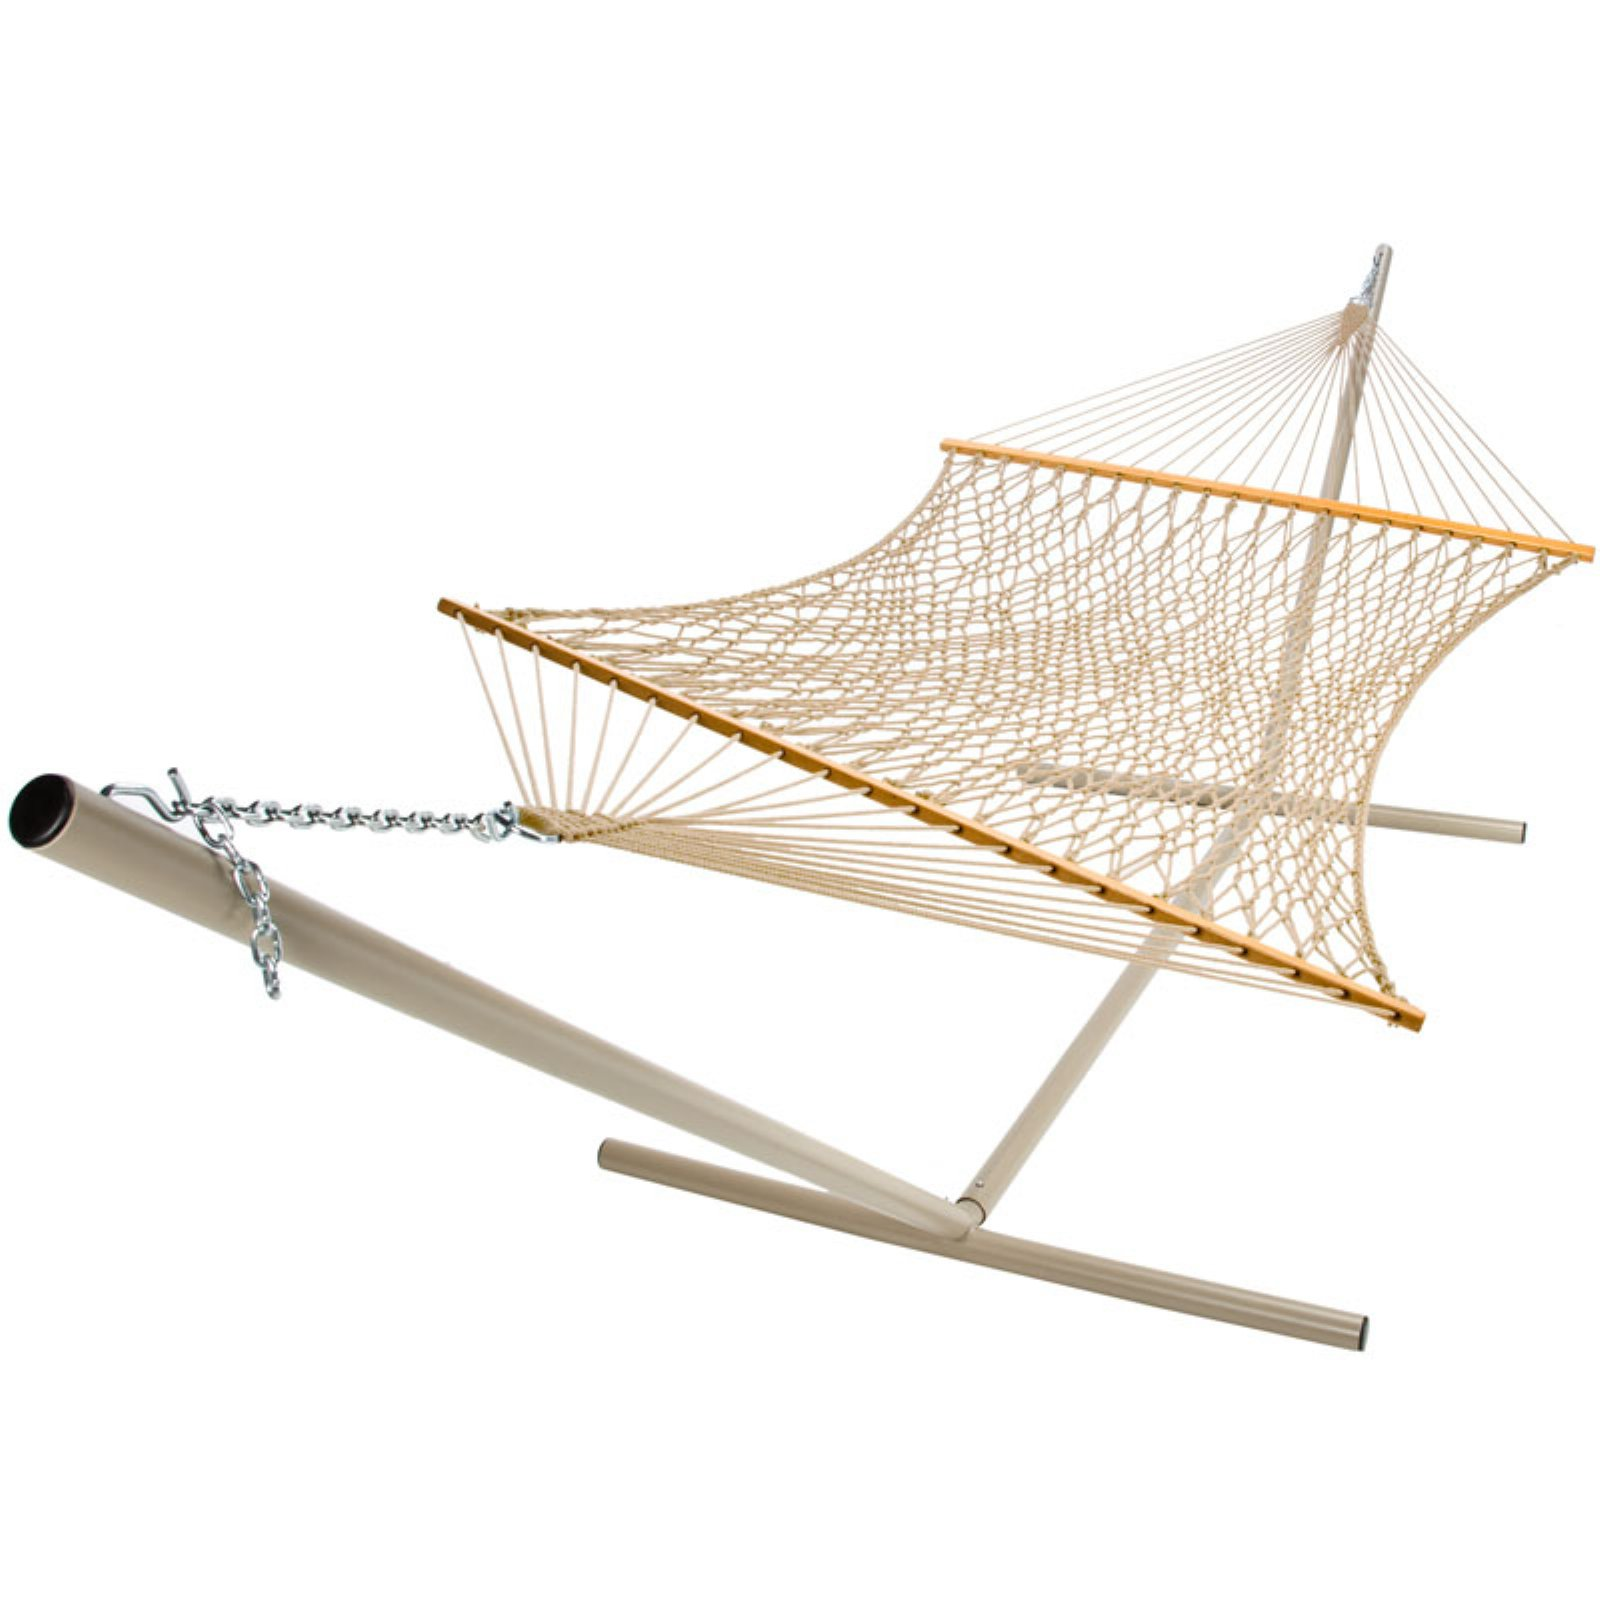 Castaway Deluxe Polyester Rope Hammock by Supplier Generic